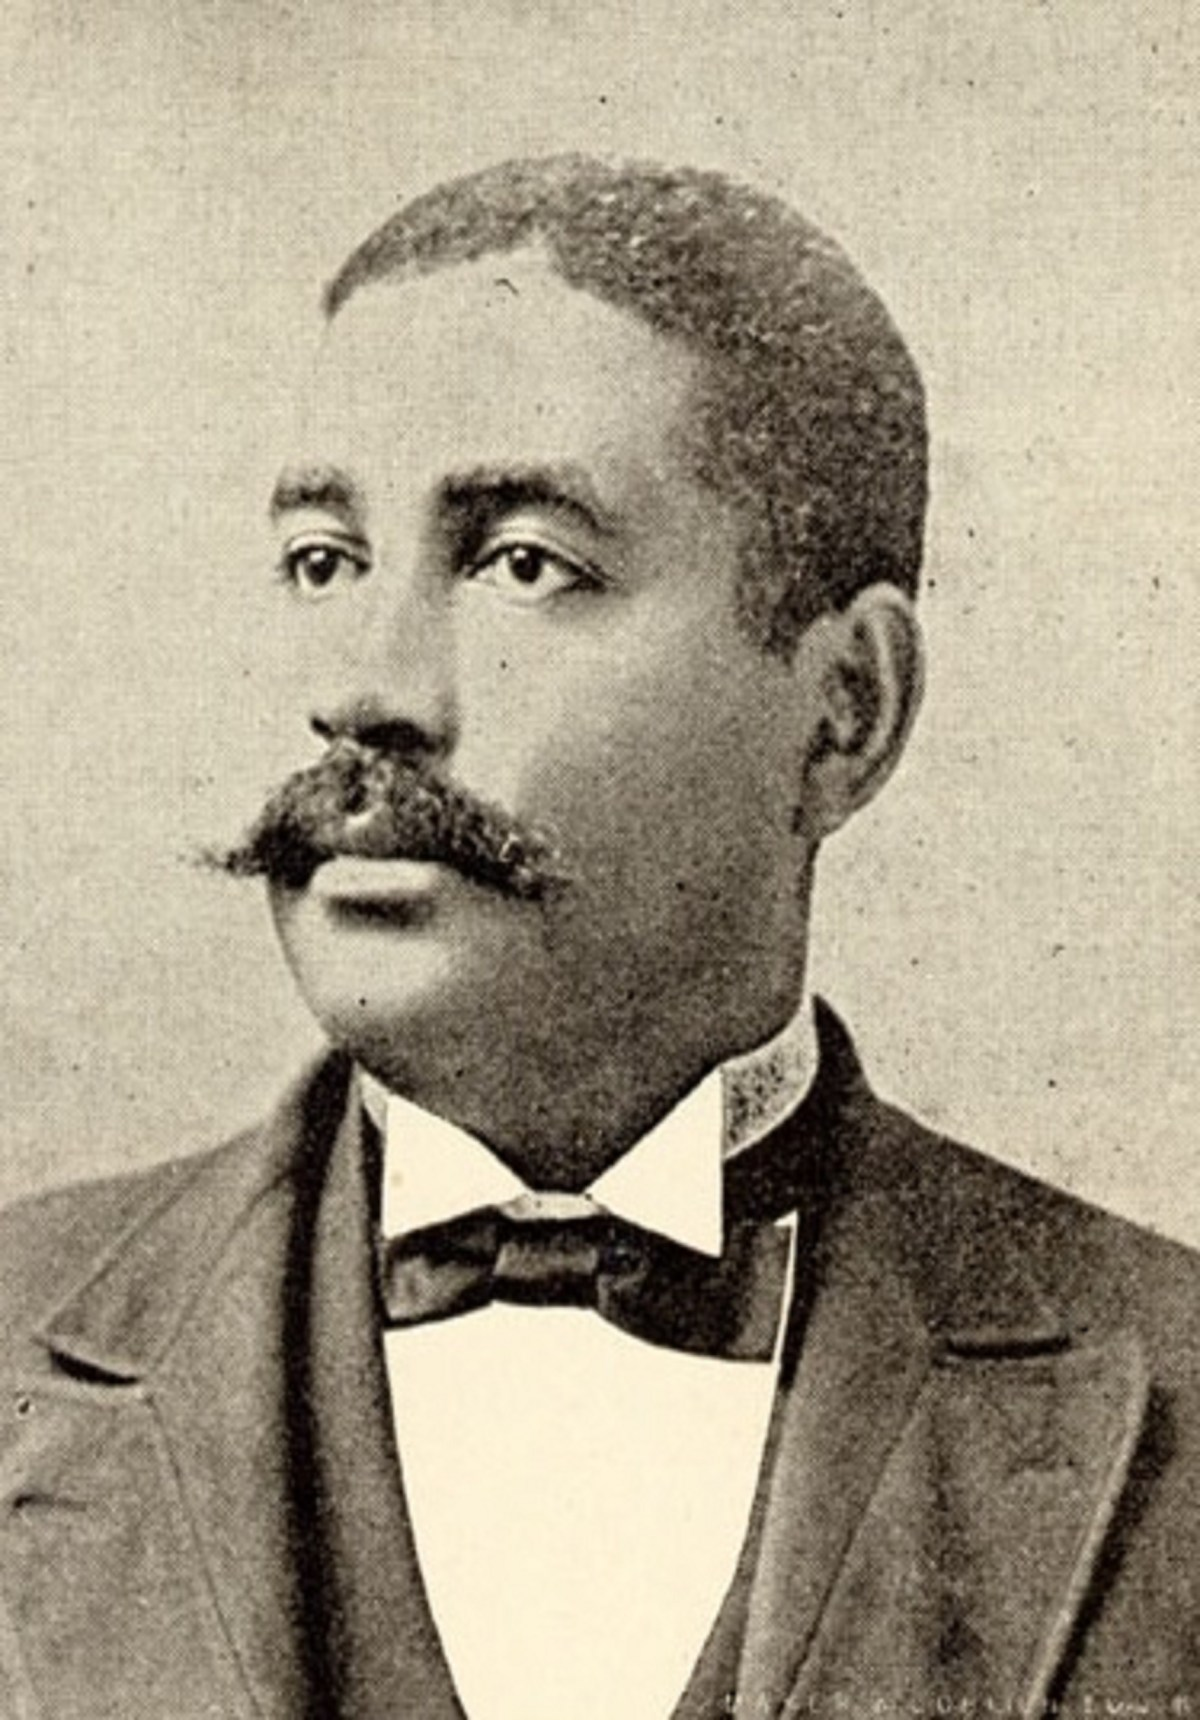 """Suffolk, Virginia: The Negro Business League meets in Suffolk (Image) – Rev. Wesley Faul """"Pop"""" Graham (1907)"""